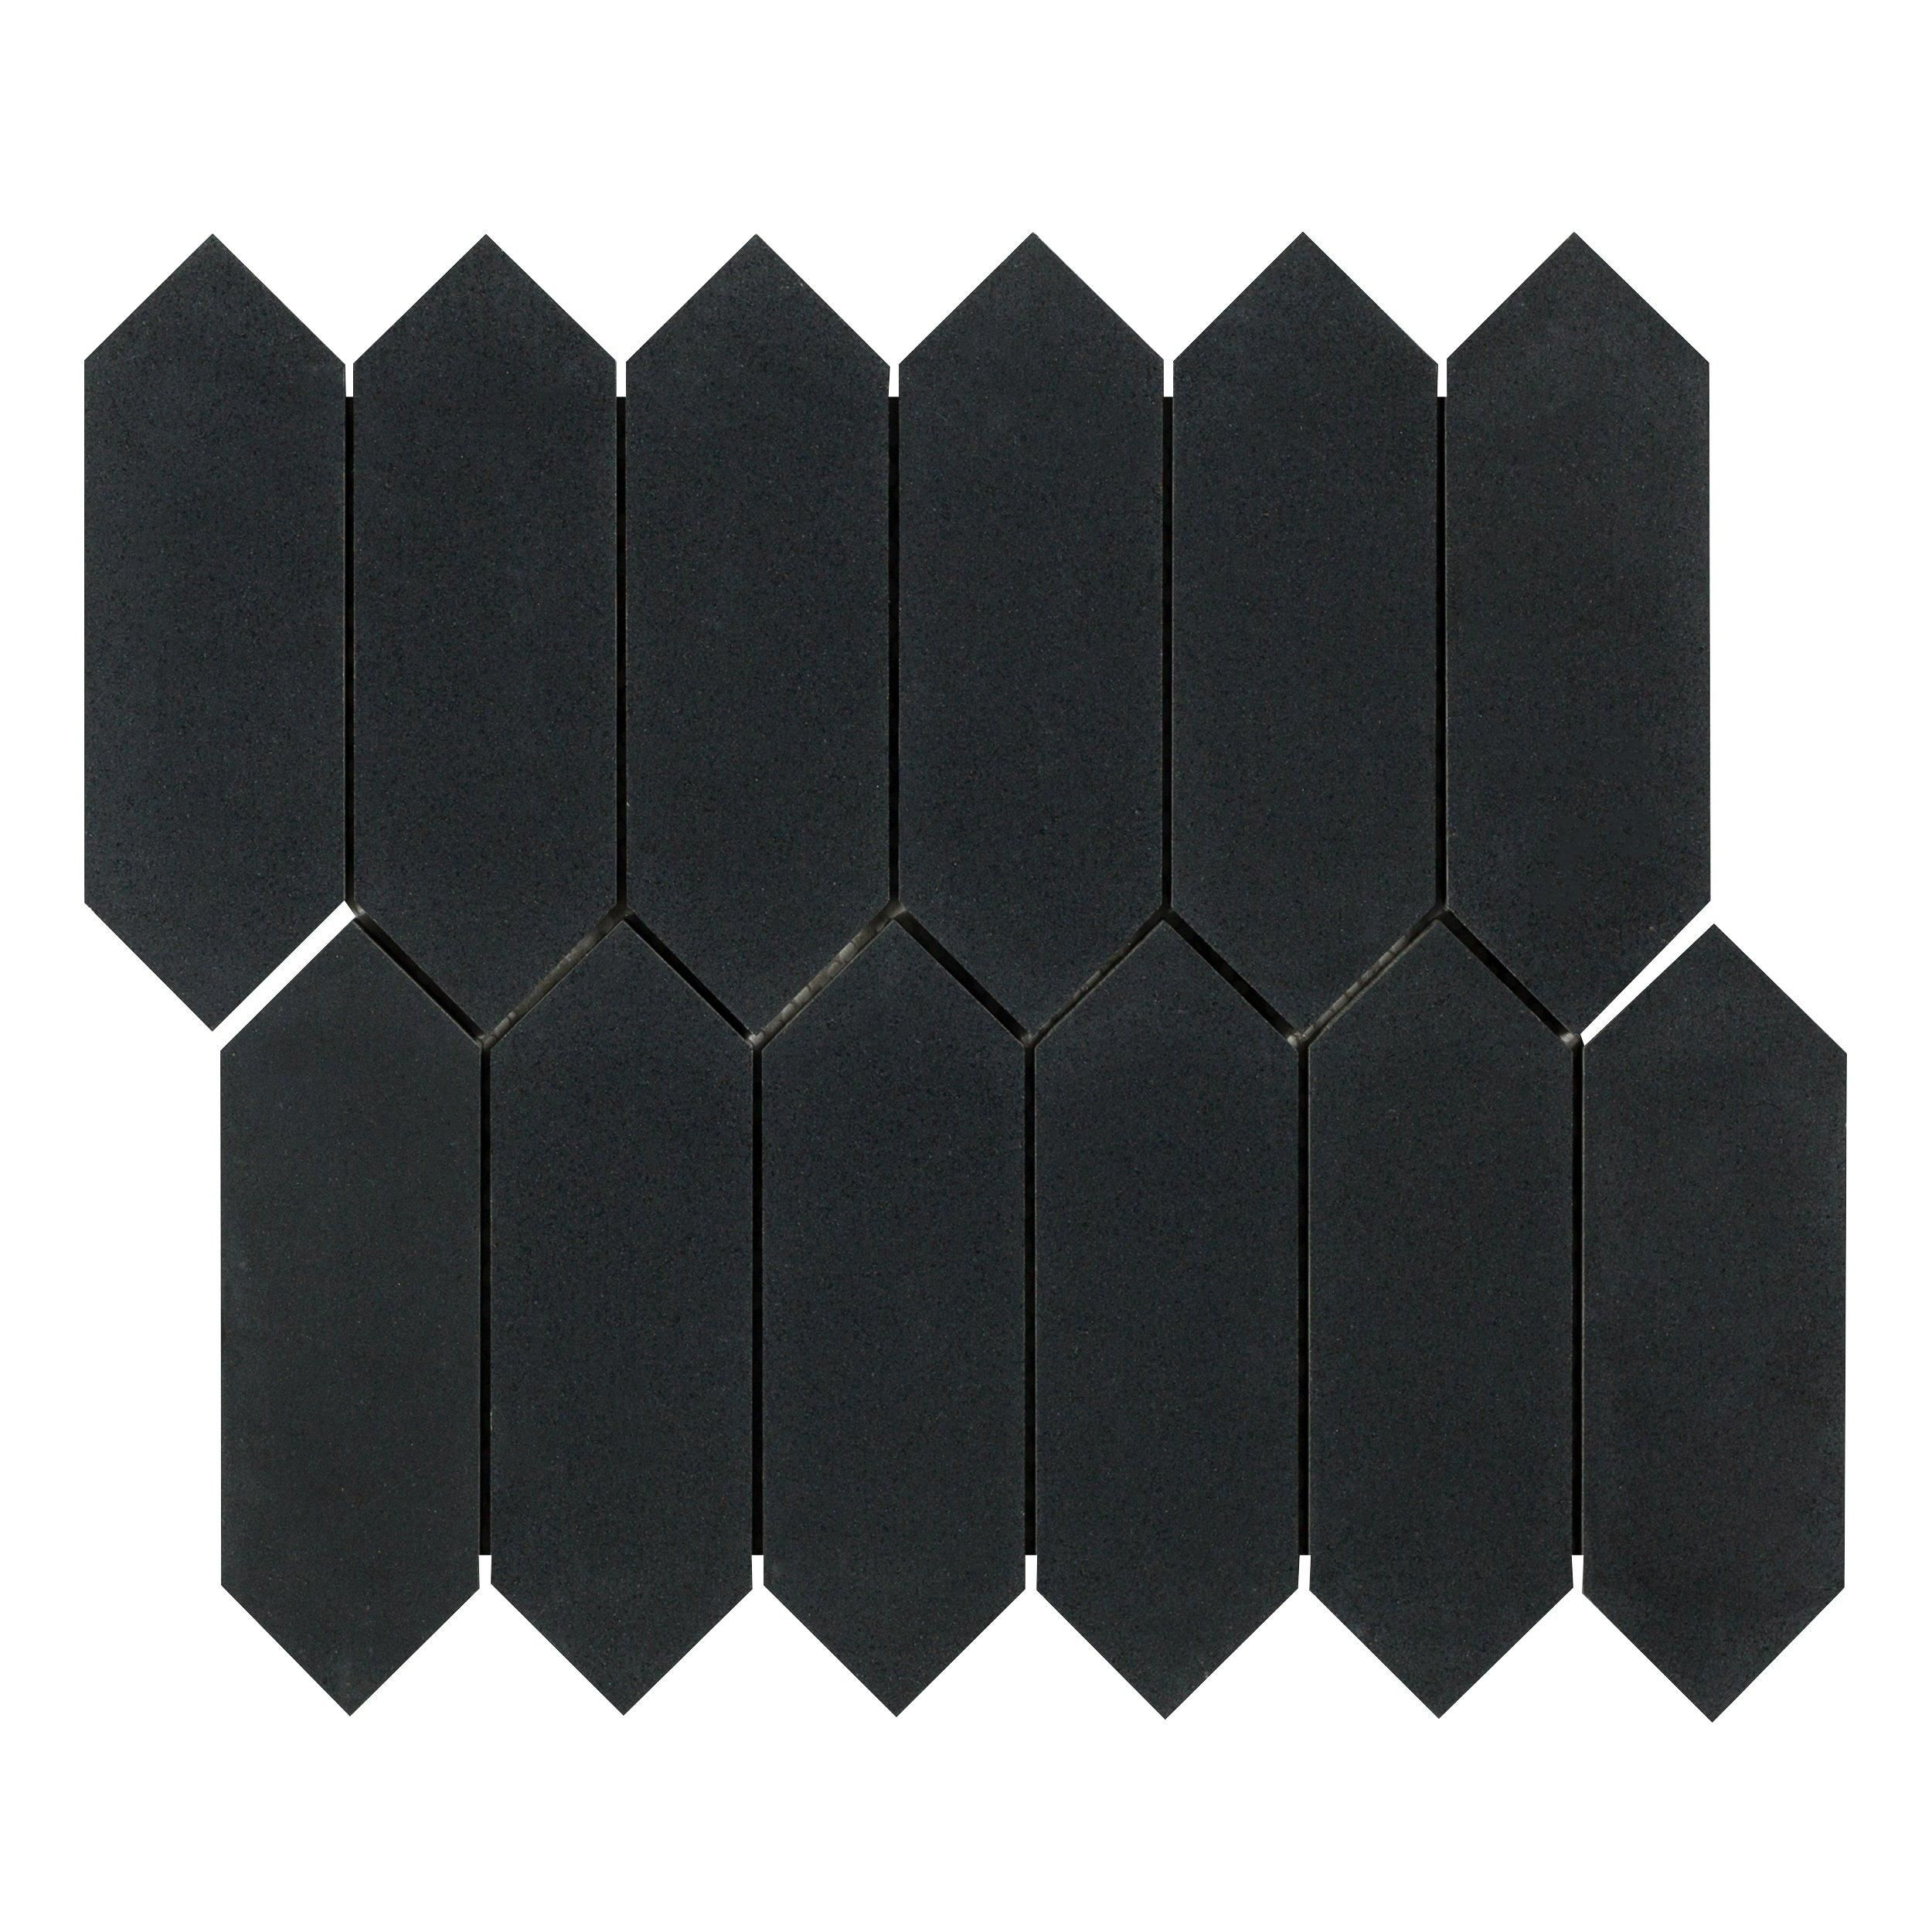 Jet Black Basalt Picket Limestone Mosaic Black Basalt Mosaic Black Granite Tile